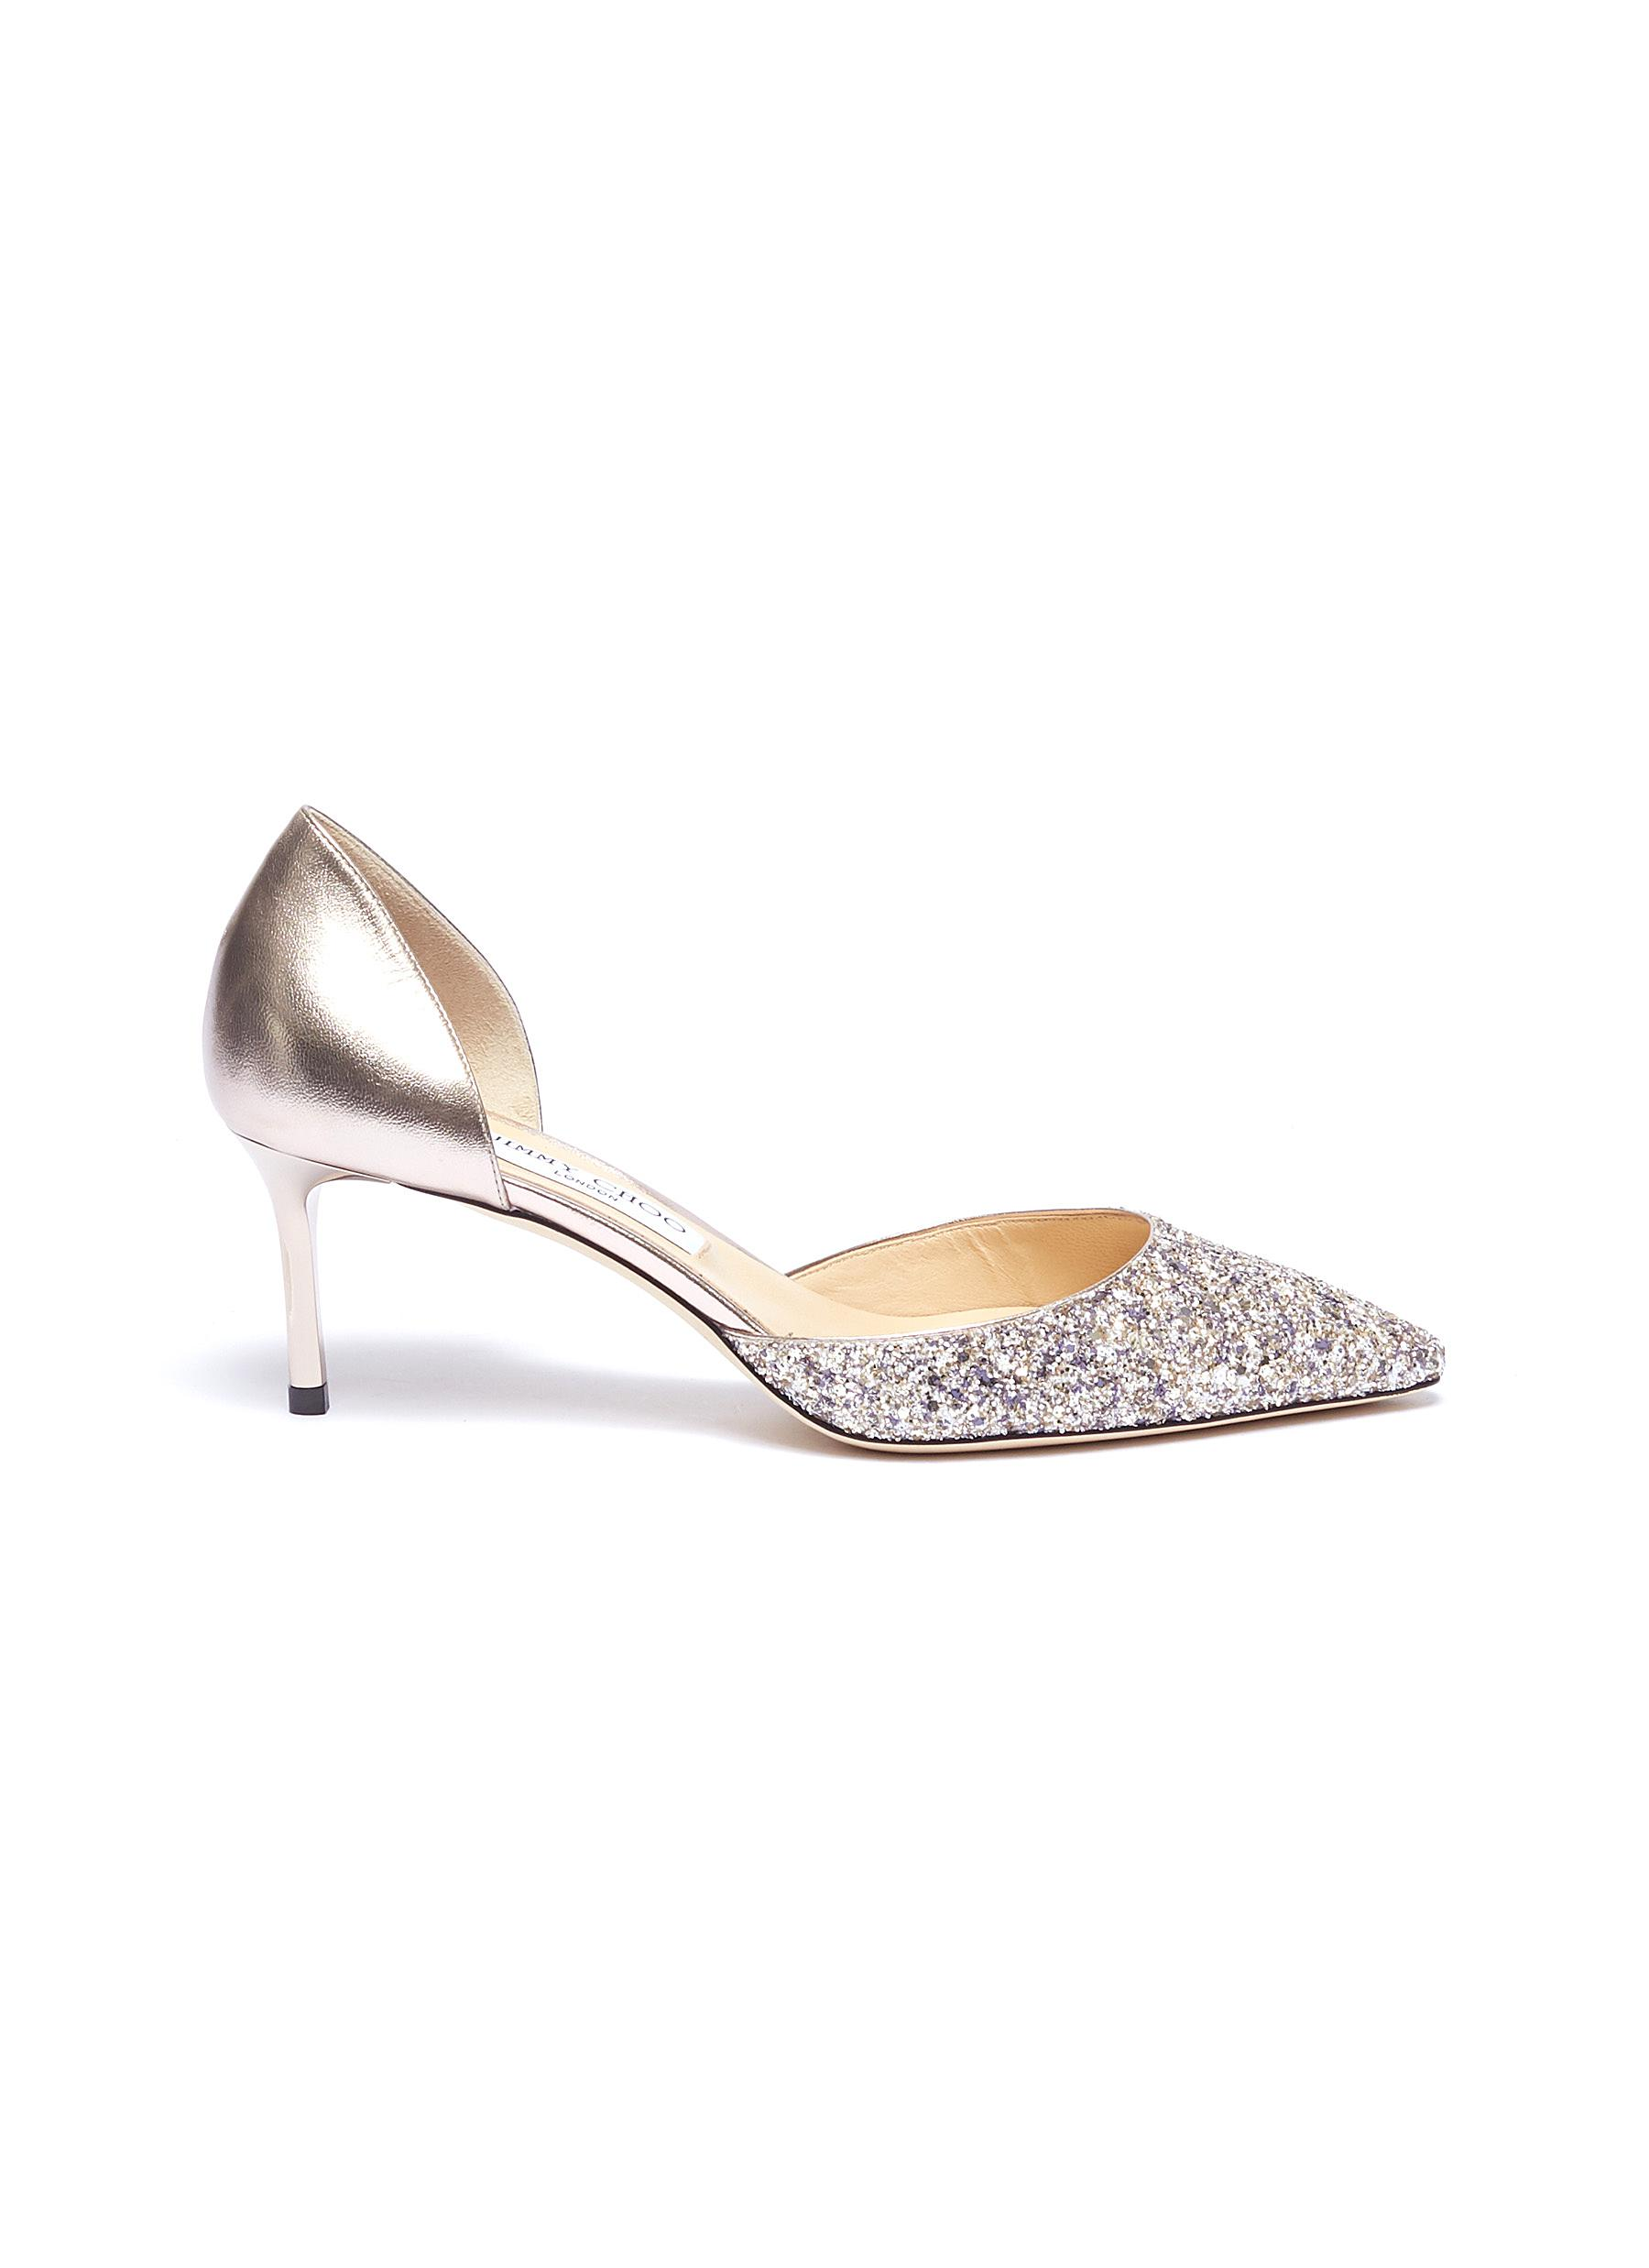 Esther 60 coarse glitter metallic leather dOrsay pumps by Jimmy Choo